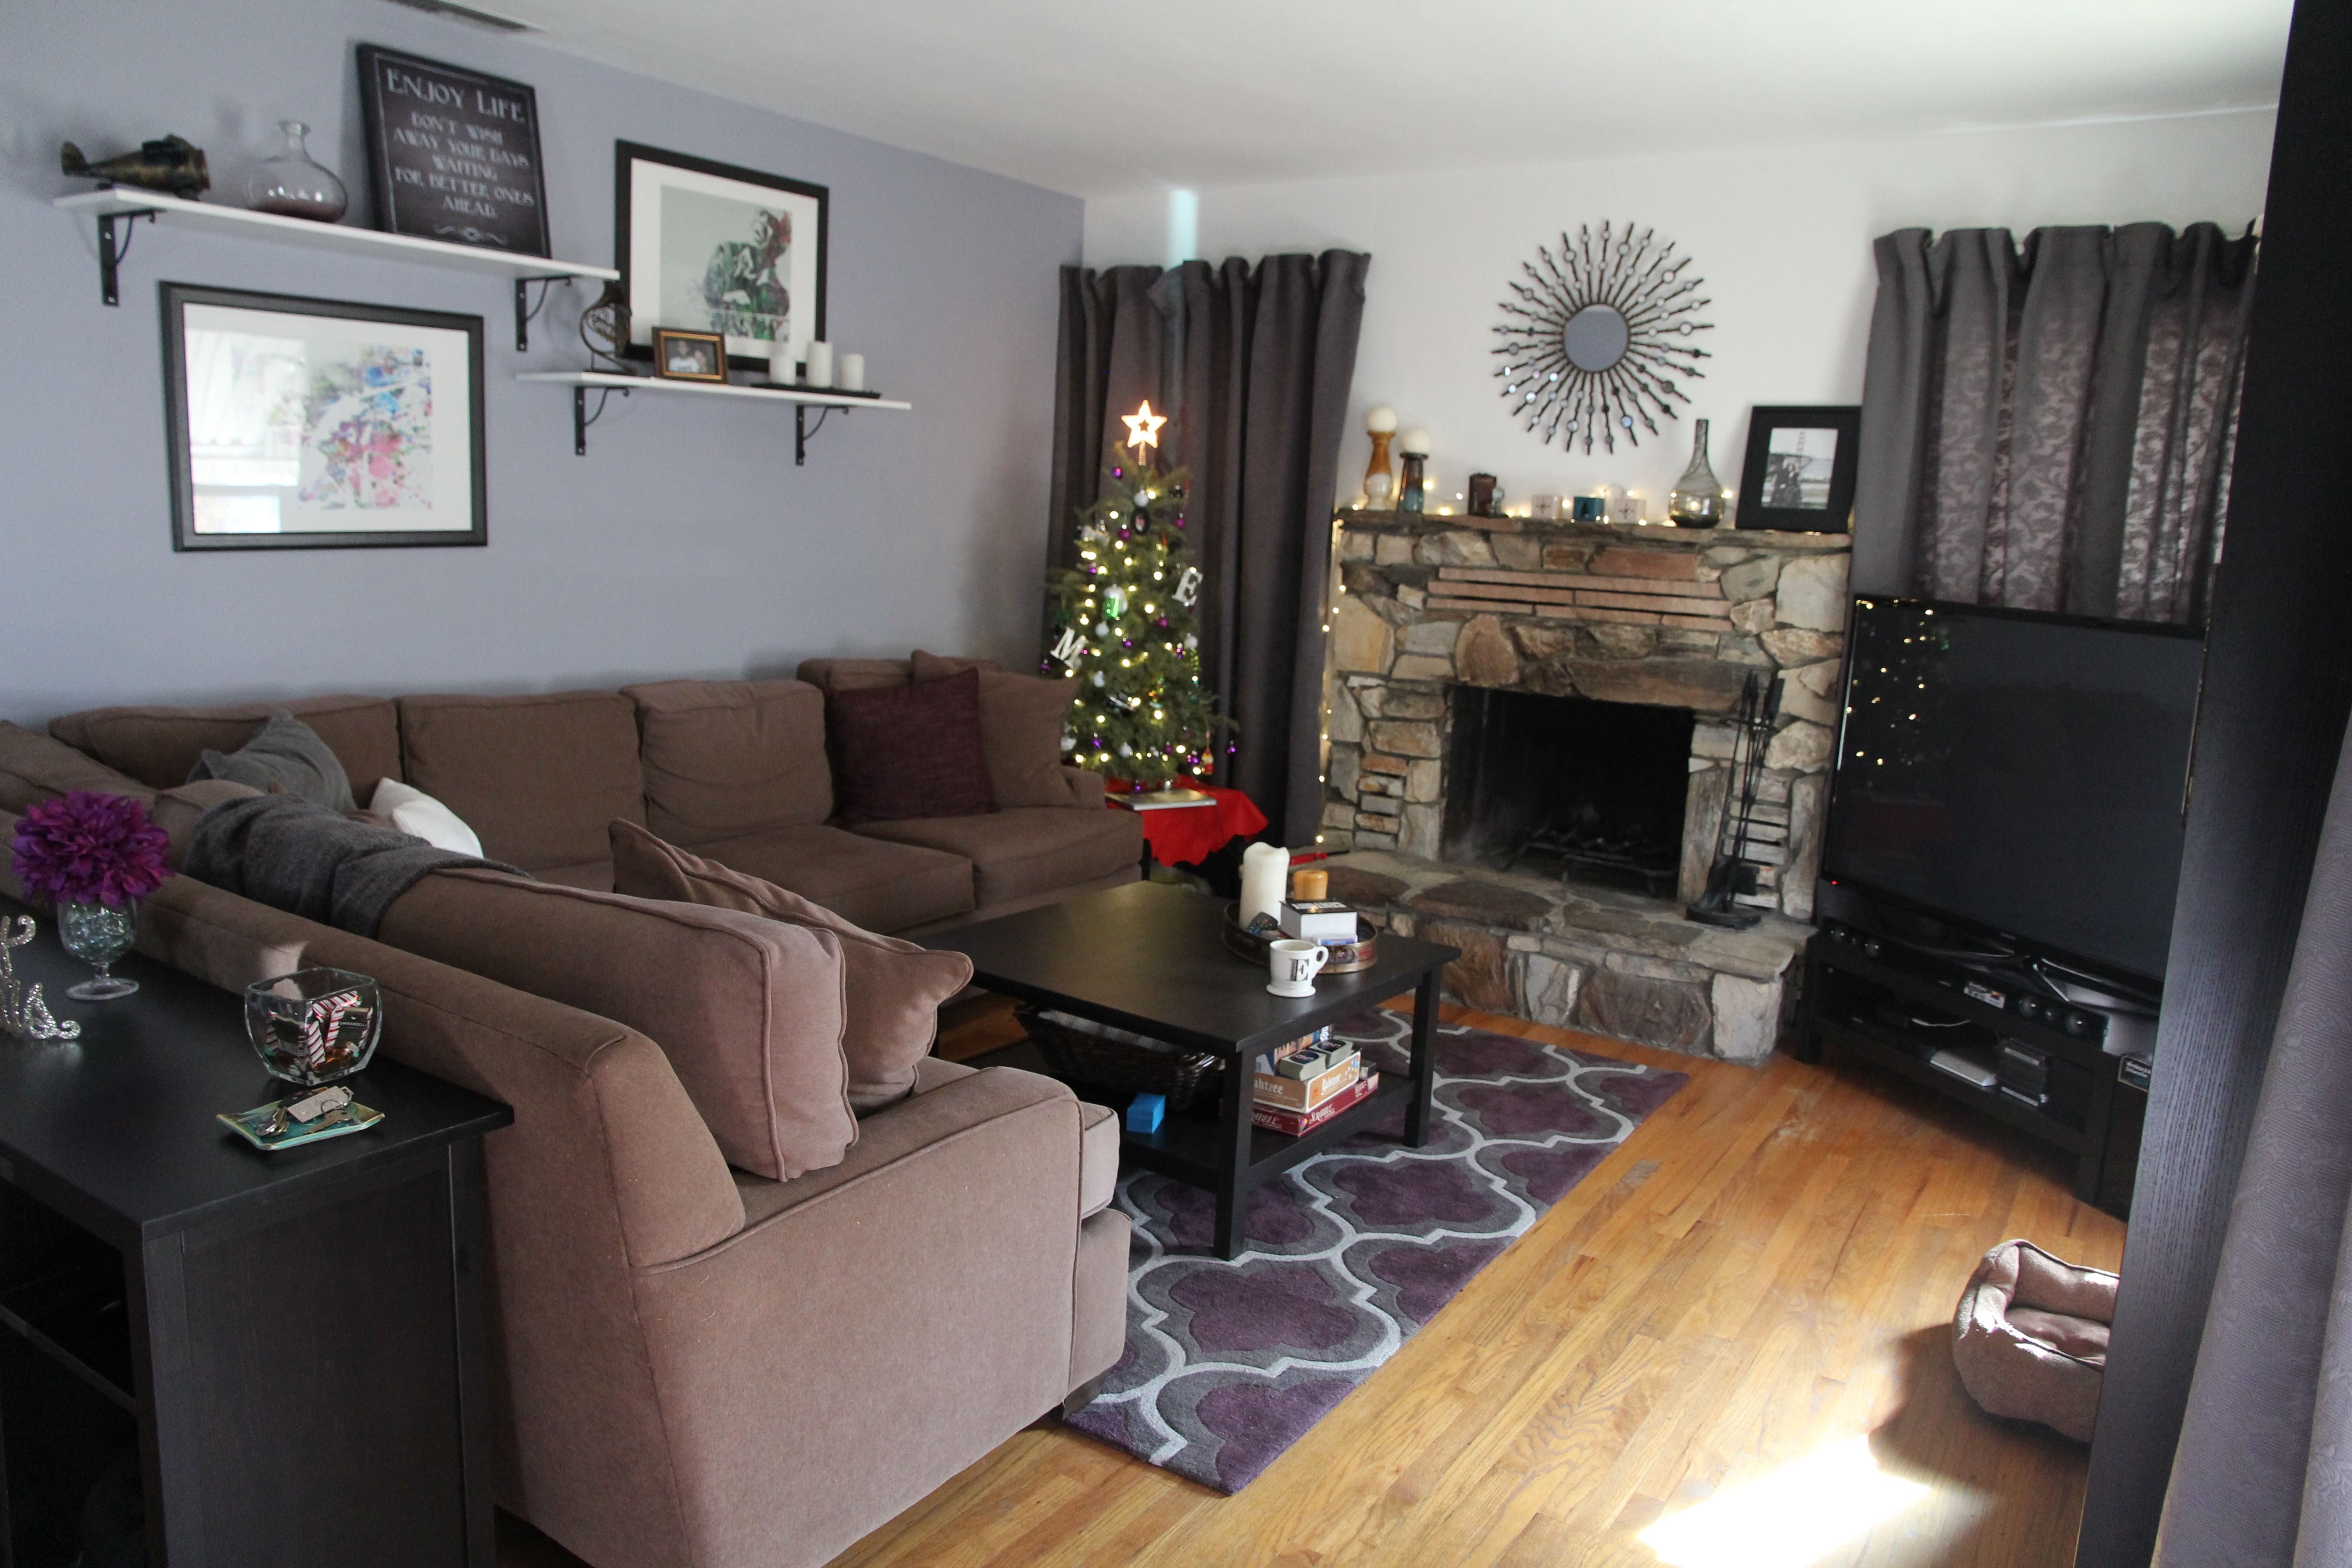 Brown and purple living room - Our Almost Finished Living Room Cool Grey Blue Walls Stone Fireplace Brown